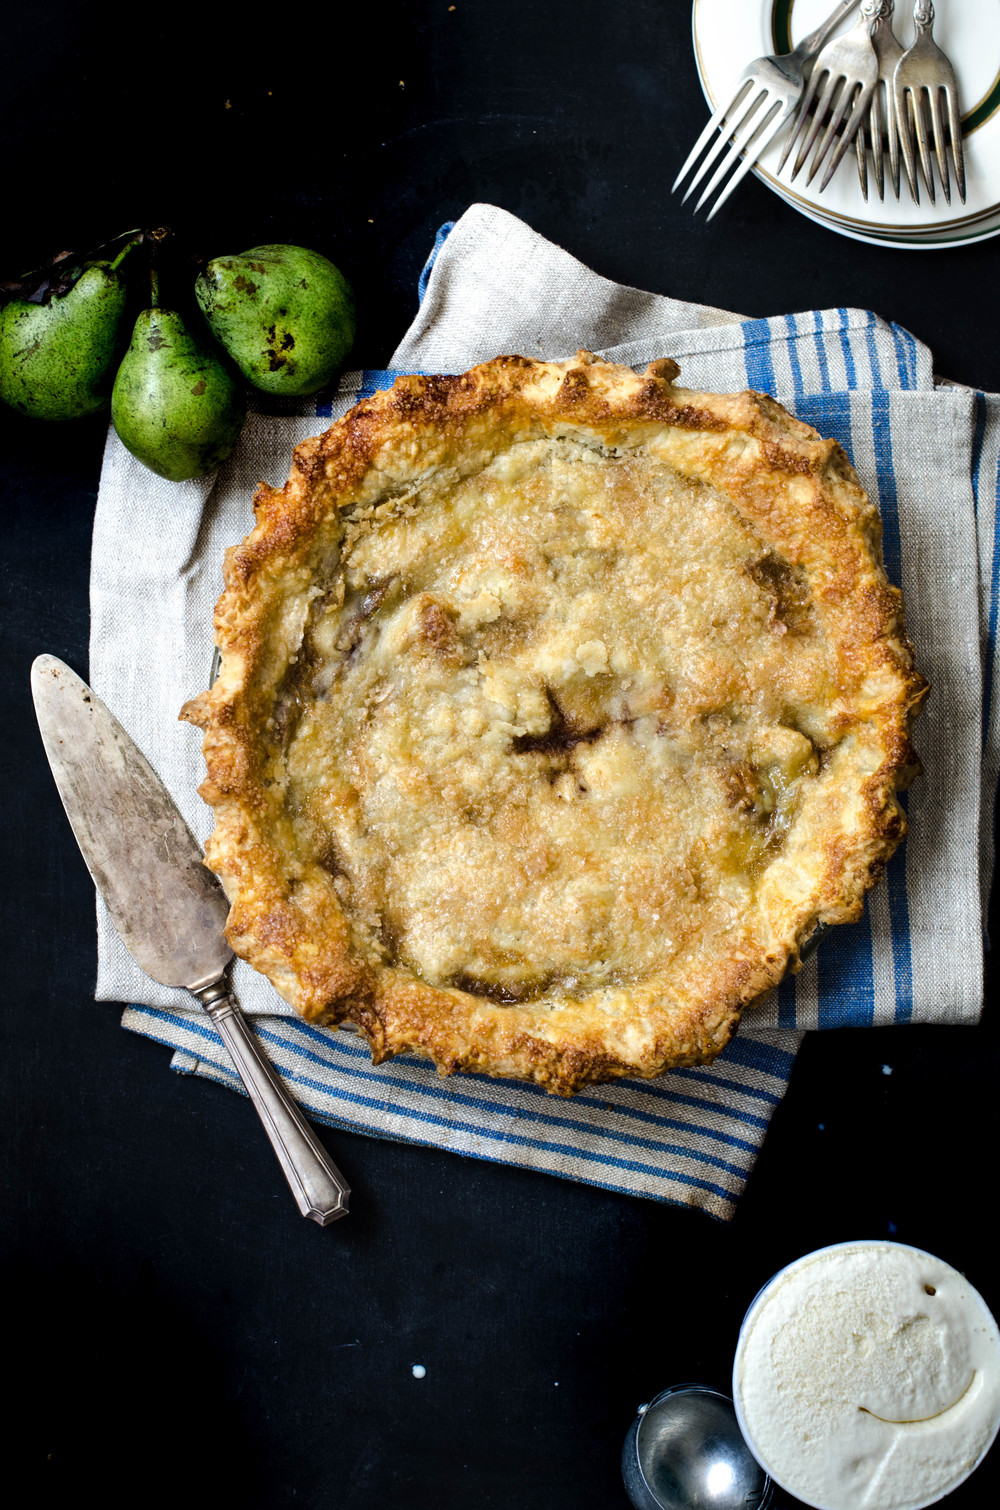 ROSE & IVY Journal Browned Butter Pear Pie